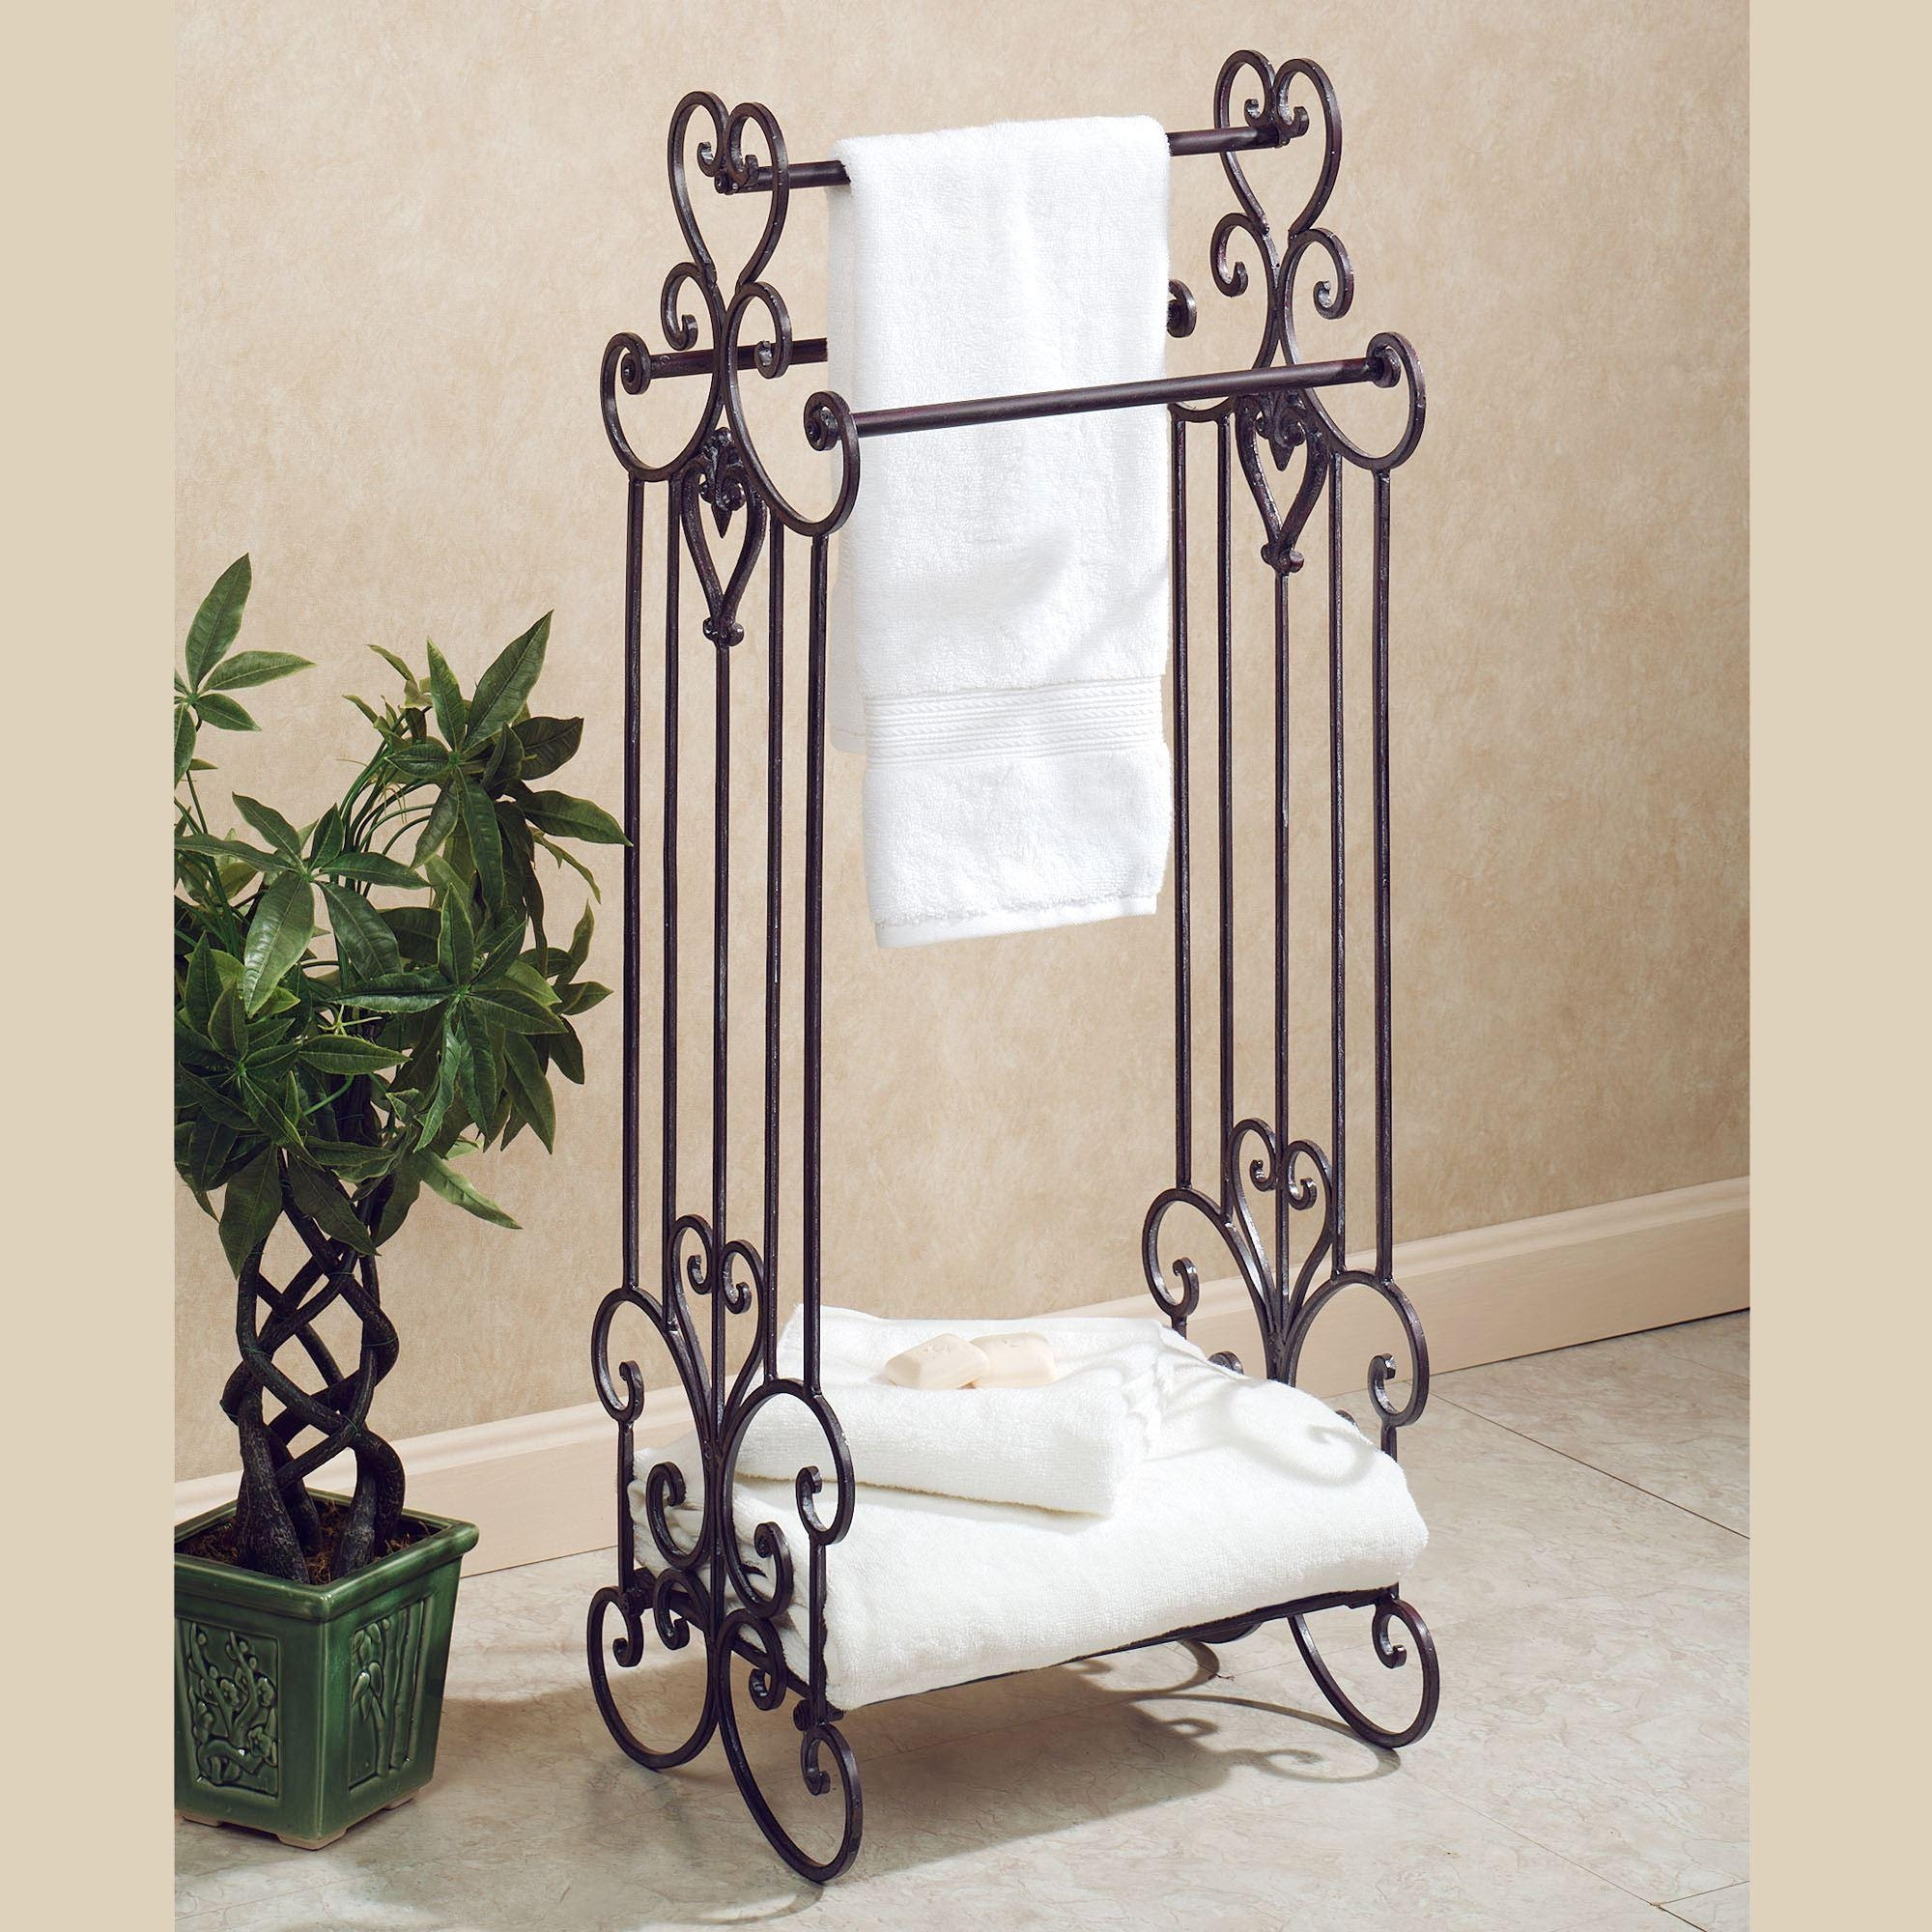 Bedroom : Scroll Wall Decor Wrought Iron Wall Decor Silver Metal Pertaining To Wood And Iron Wall Art (View 19 of 20)